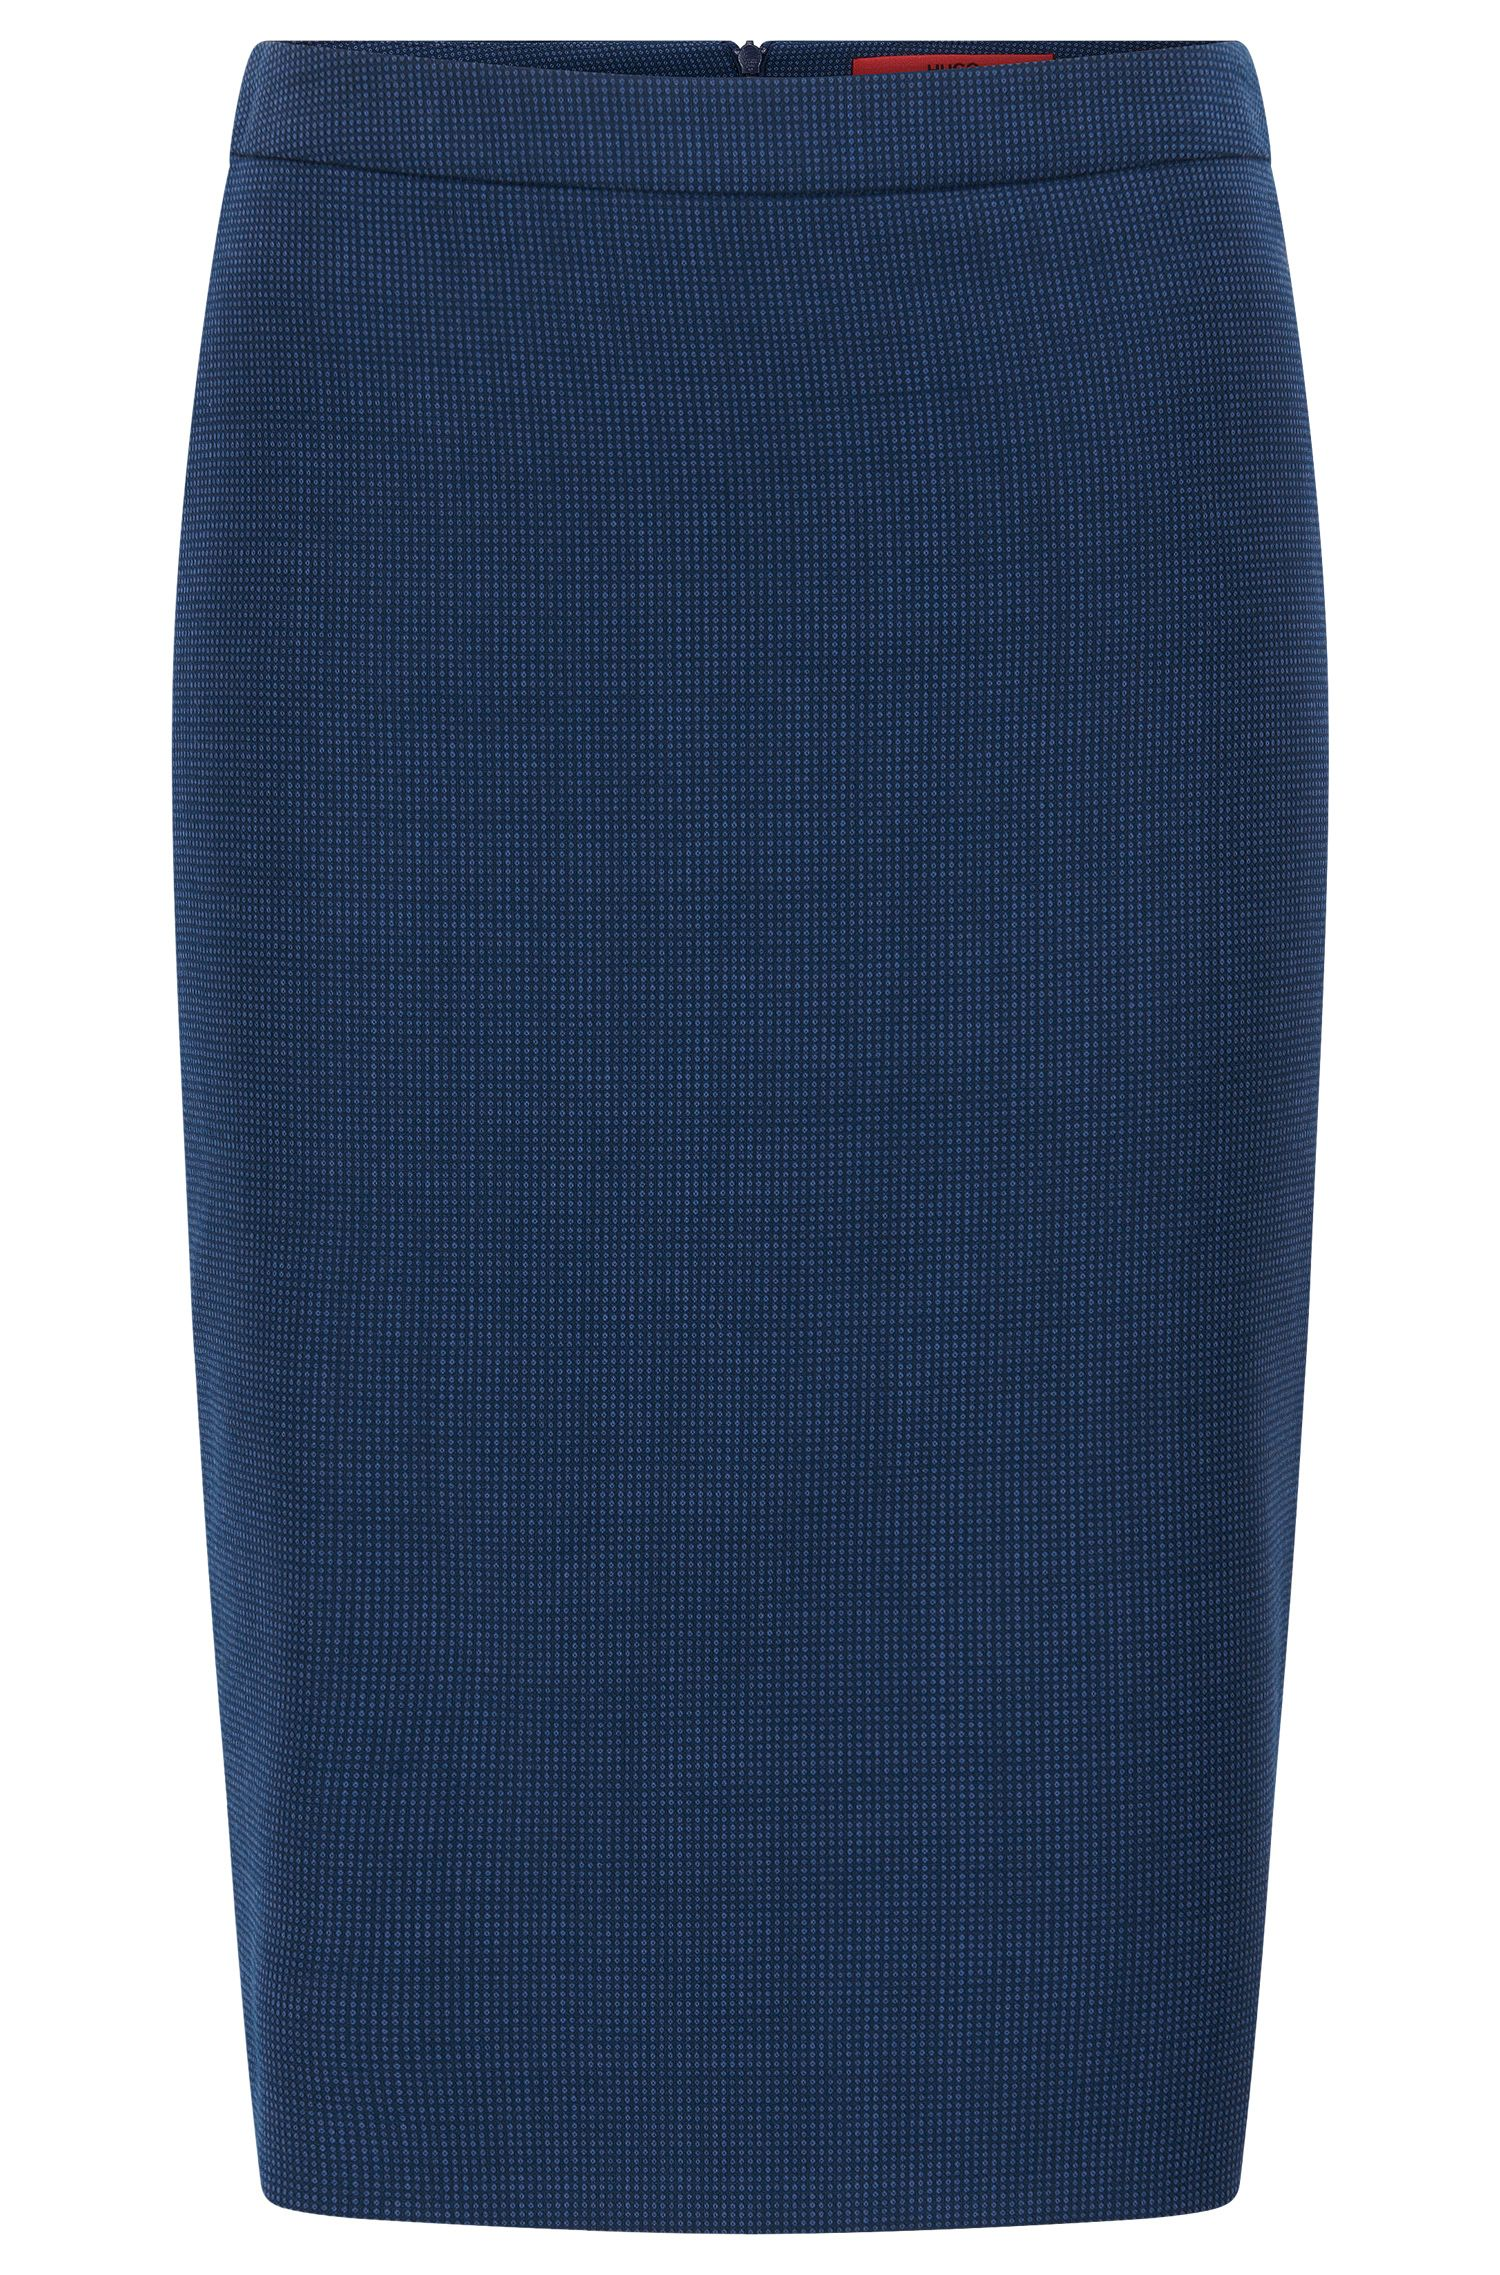 Regular-fit pencil skirt in virgin wool